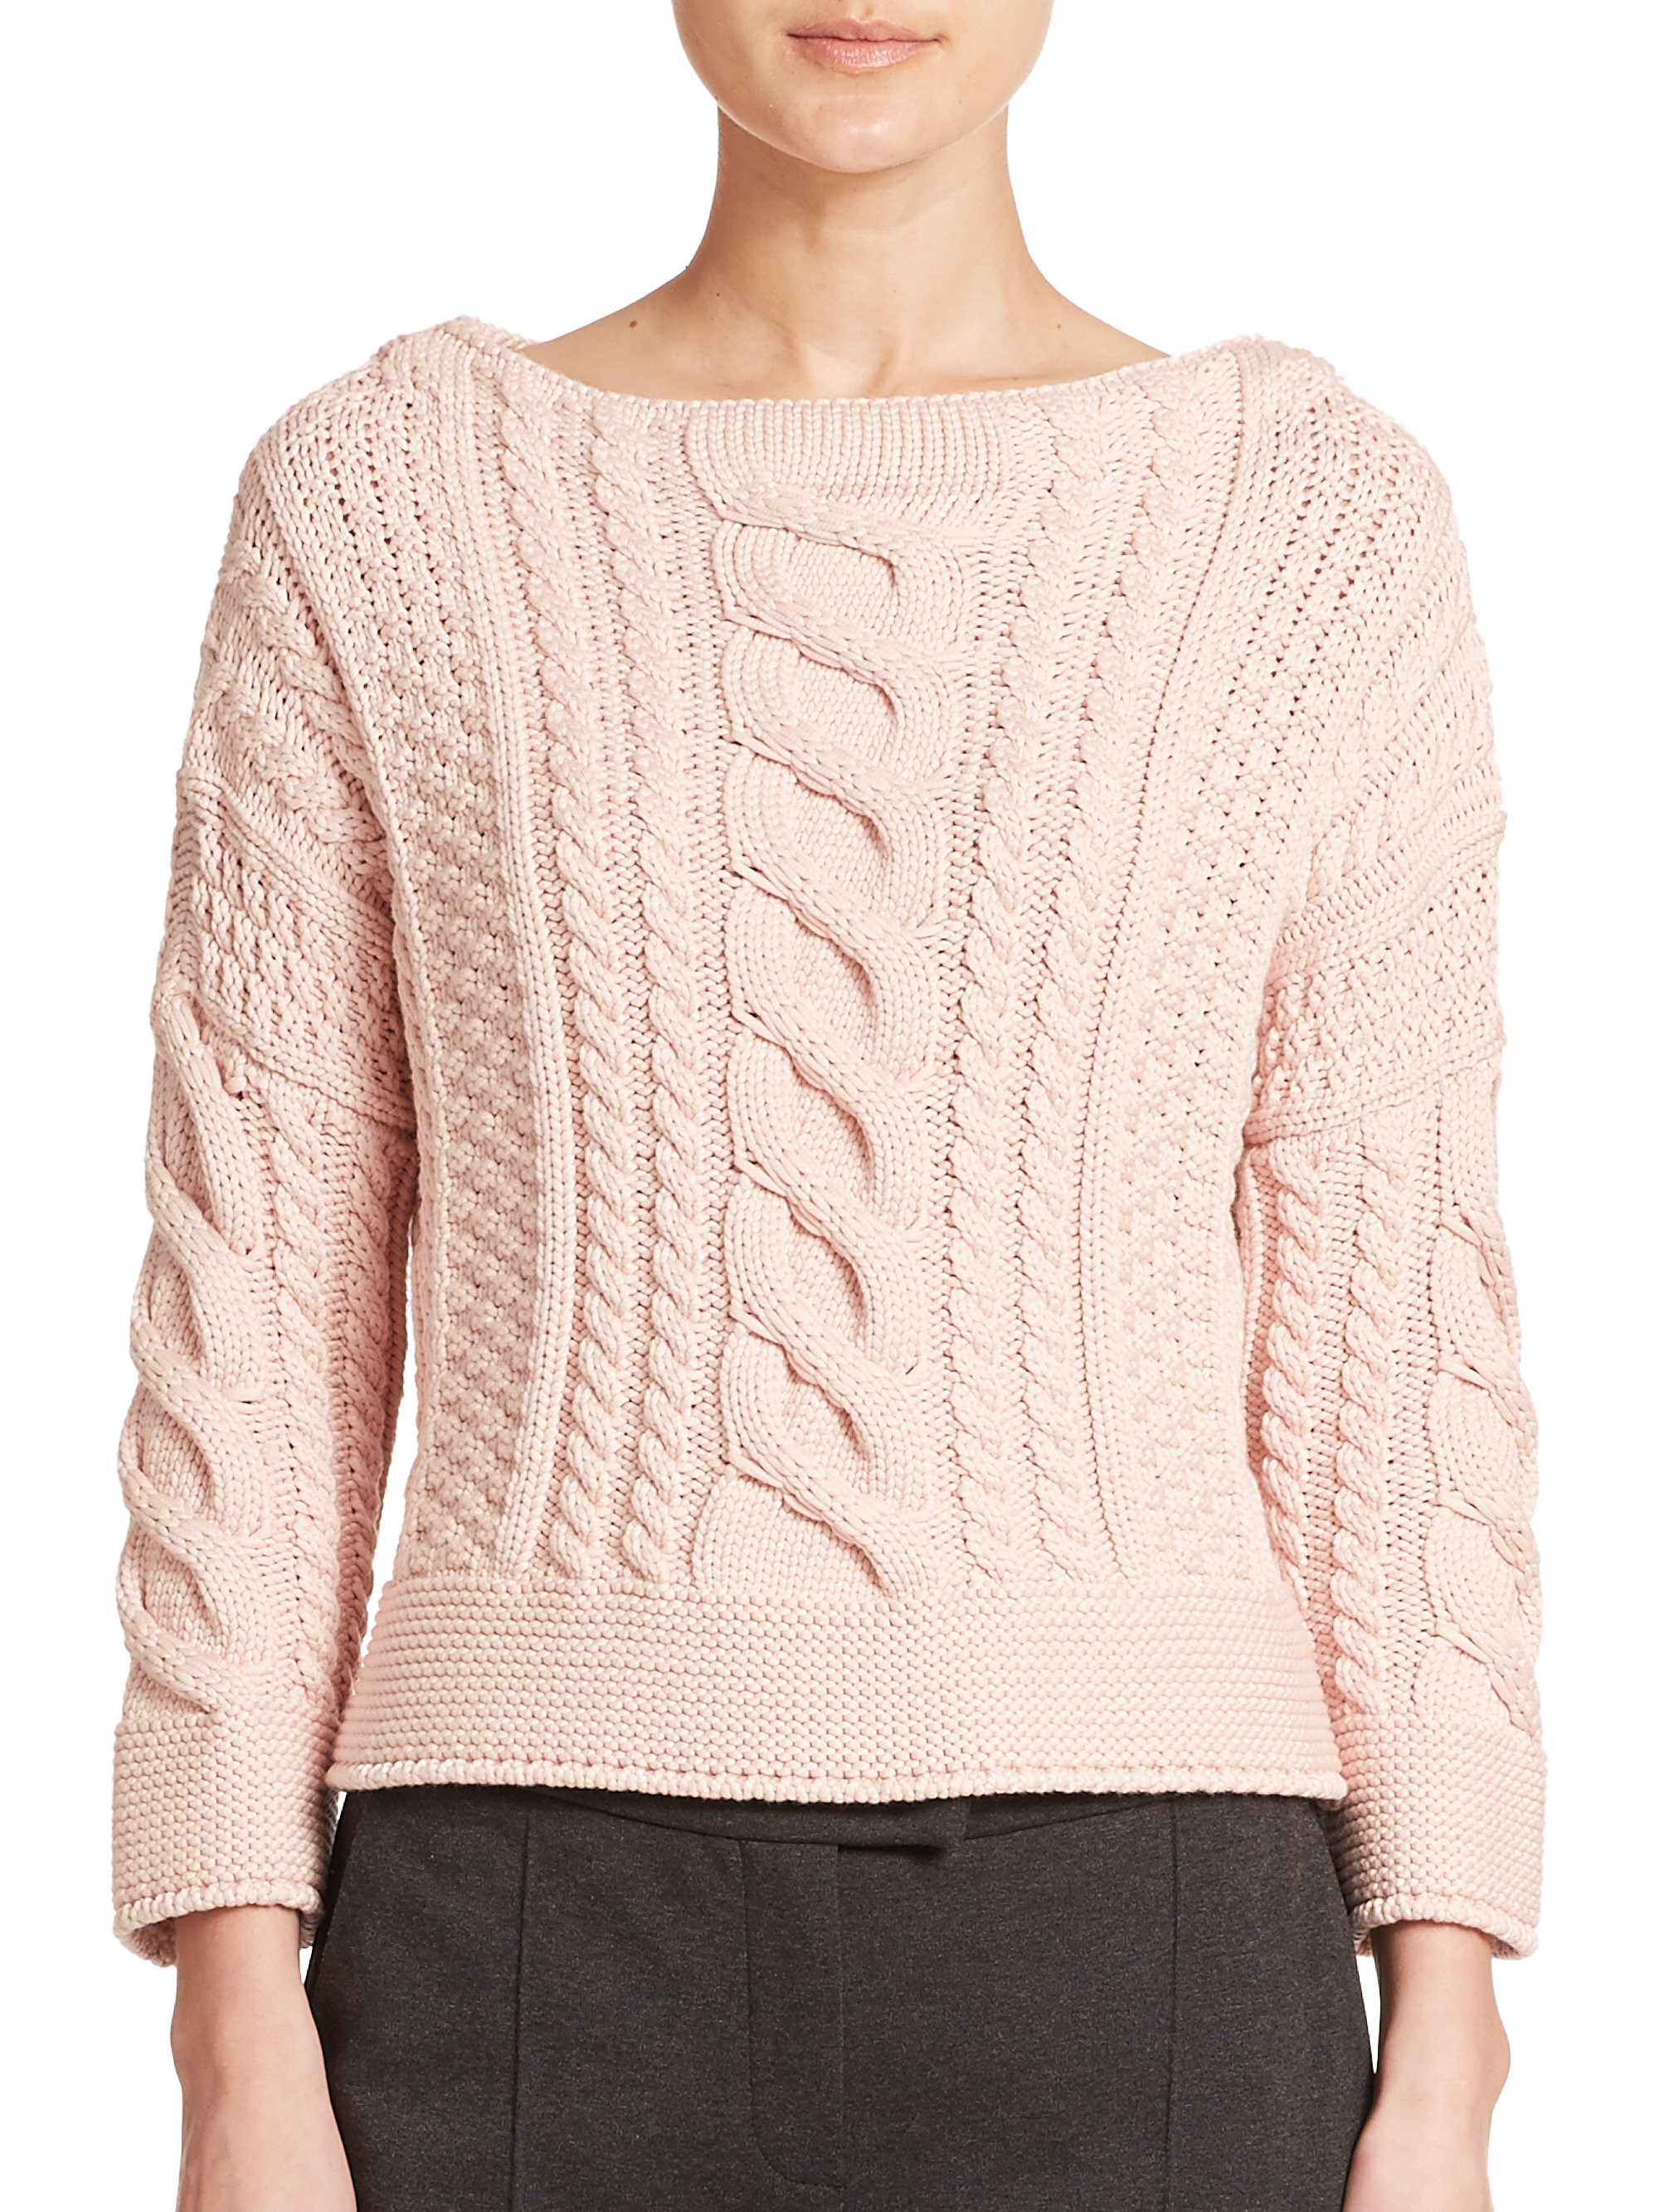 Awesome Lyst Weekend by Maxmara Rana Cable Knit Sweater In Pink Cable Knit Cardigan Sweater Of Wonderful 46 Models Cable Knit Cardigan Sweater